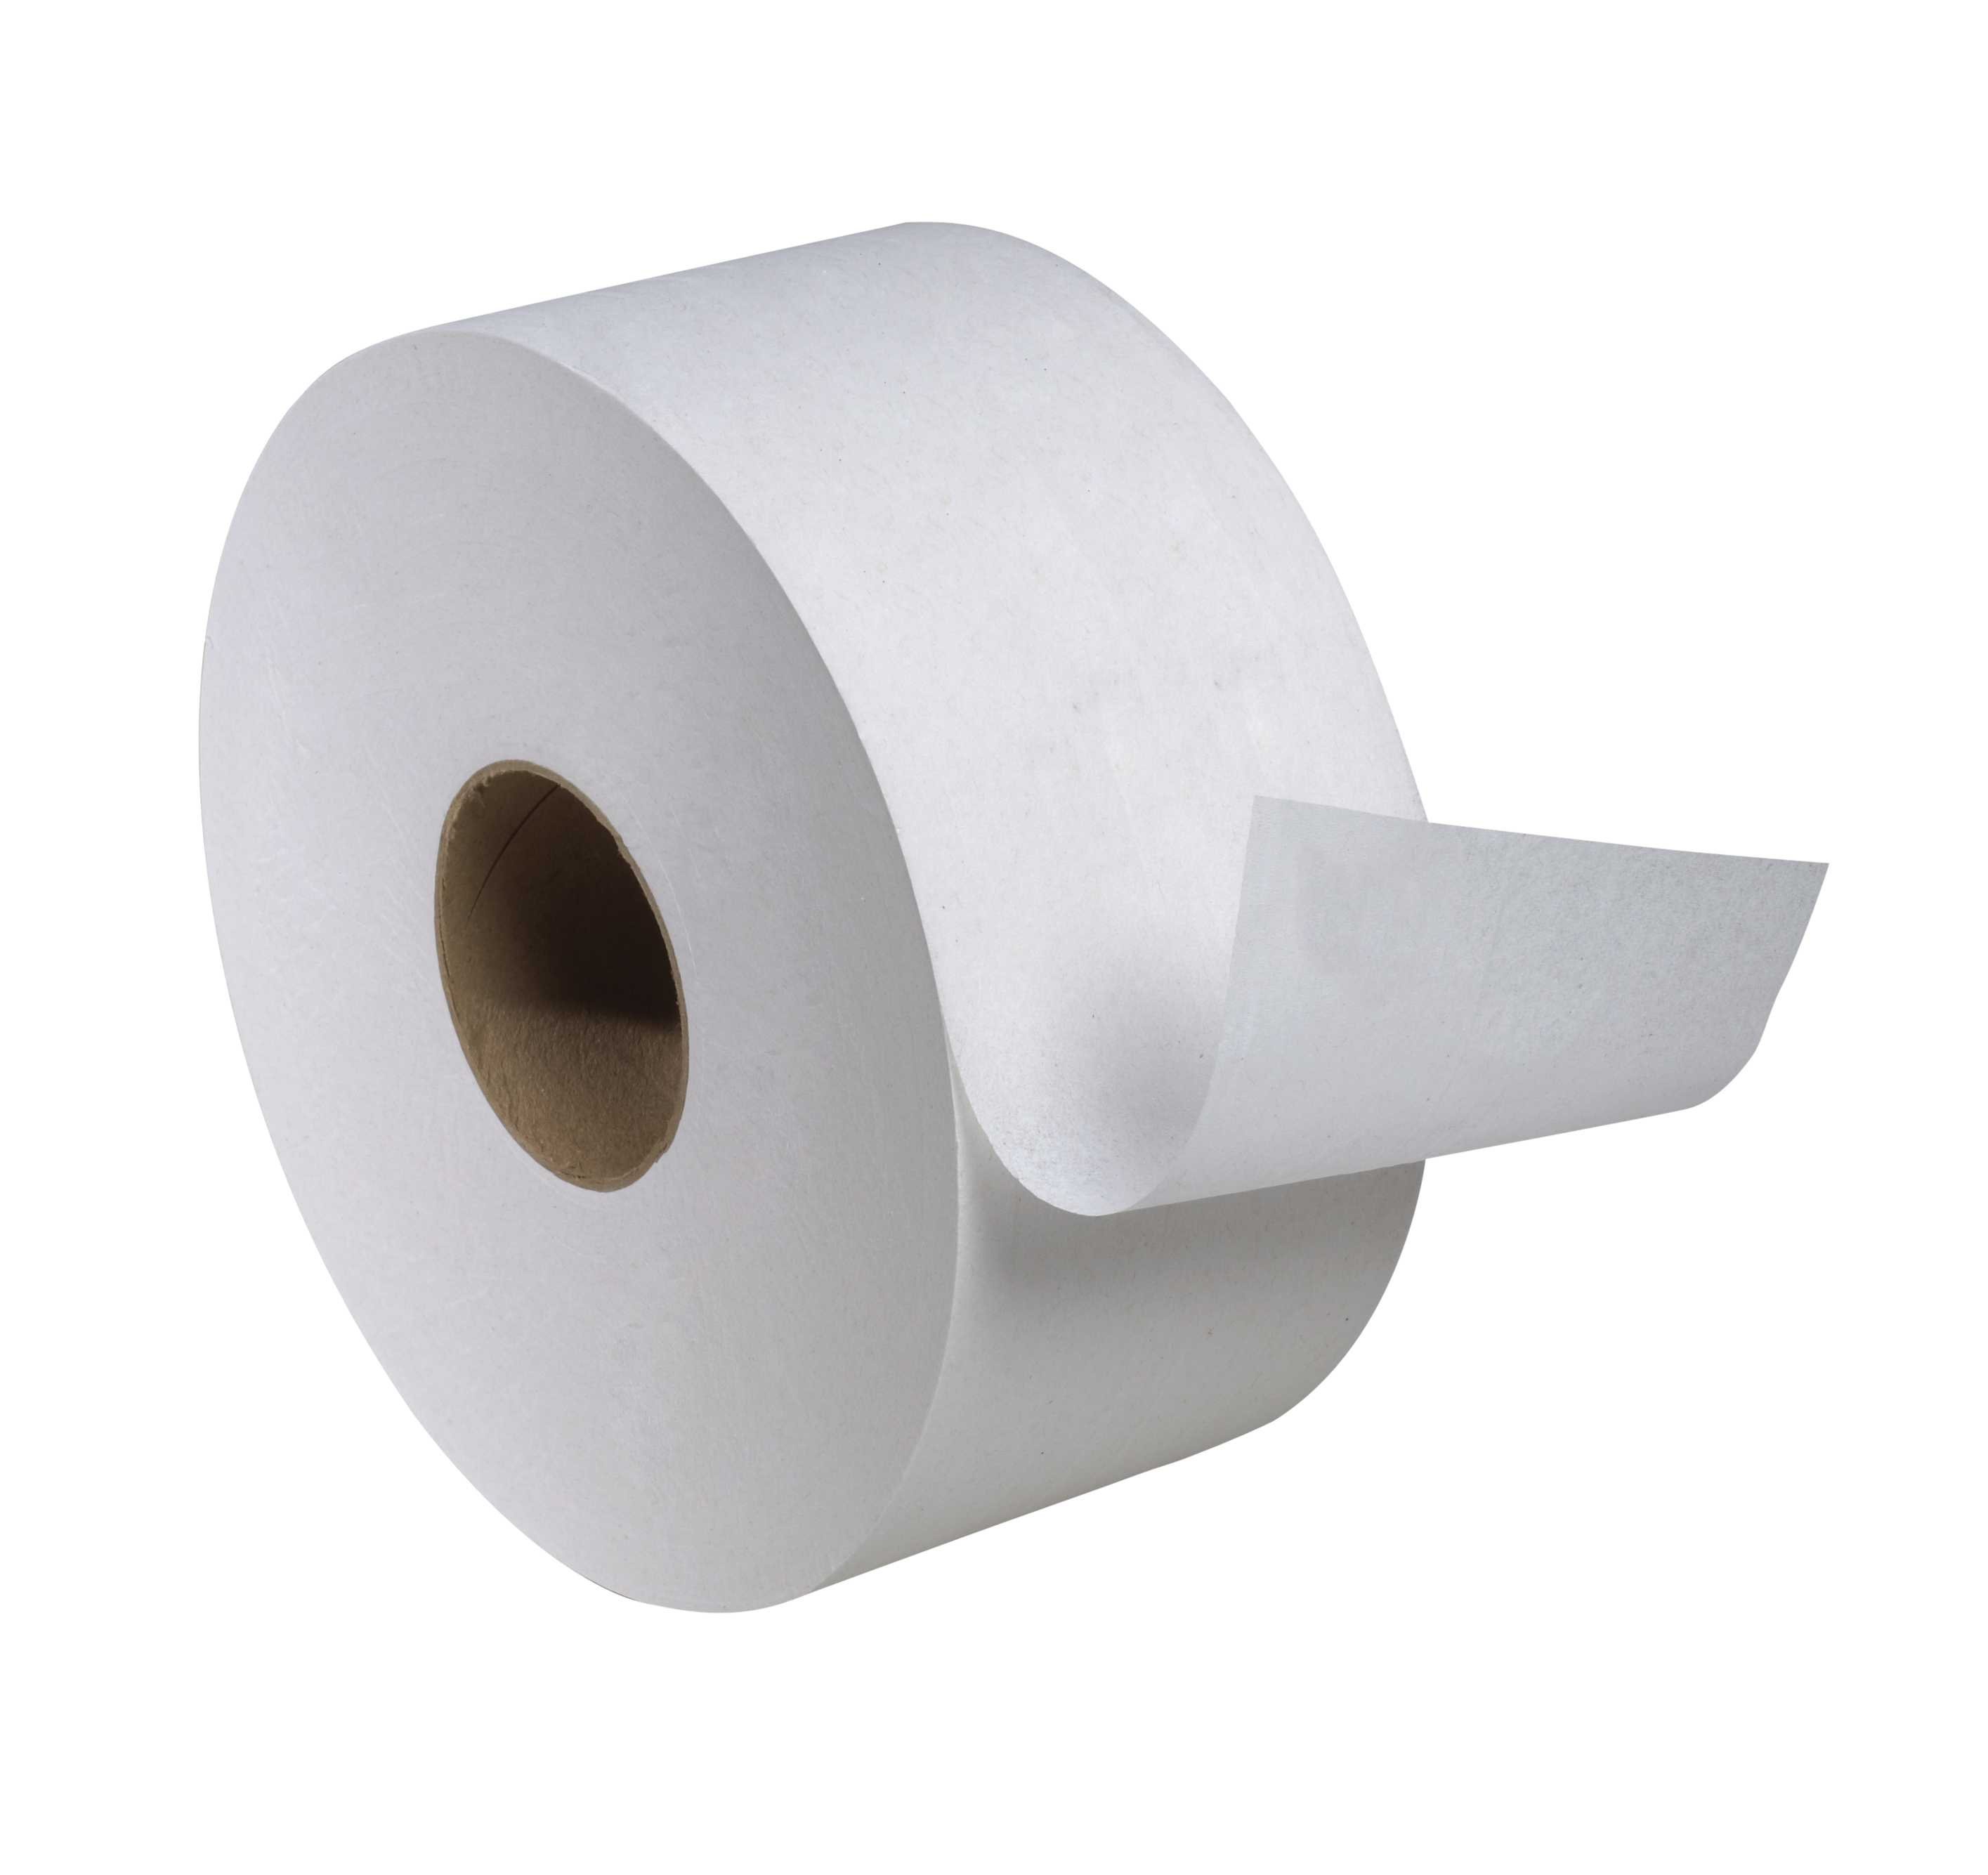 10073286624038 12013903 - Tork Advanced Bath Tissue Mini Jumbo Roll, 1-Ply, 7.36 inch Dia.